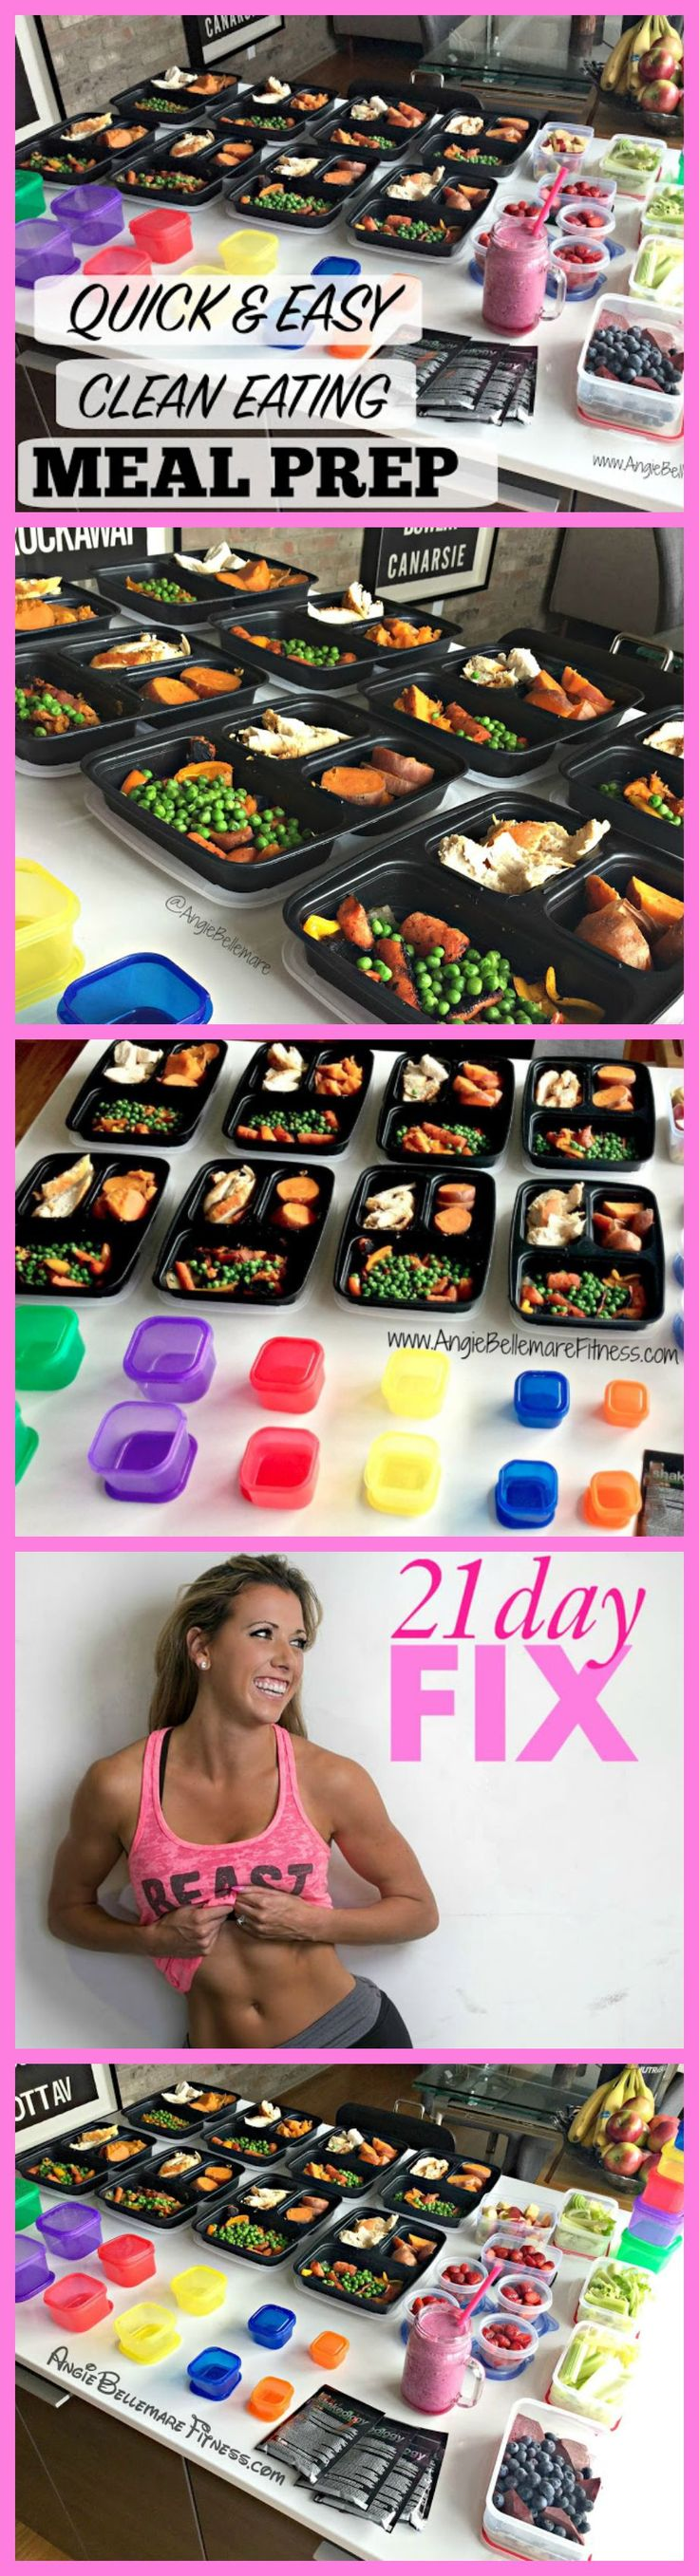 Meal prep Mondays are the best! You can set yourself up for a full week and stay on track ! CLICK the pin to see my secret weapons, and how I get REAL, long lasting results. I share recipes, videos, how I cook, and more ! REPIN if this is helpful! :-) #mealprep #21df #portioncontrol